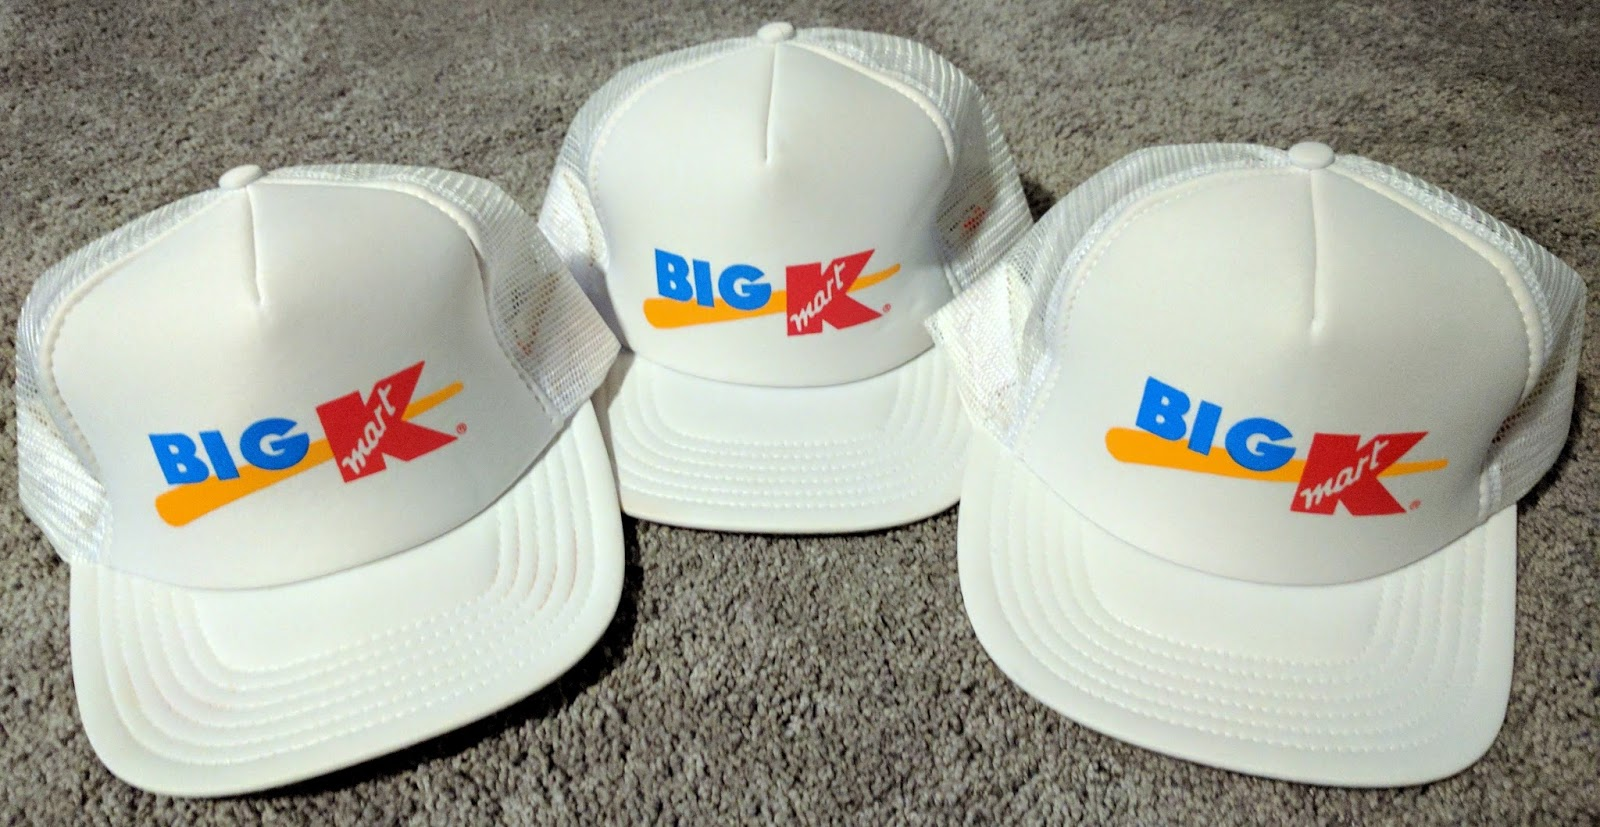 fef1aab1 Big Kmart grand re-opening hats that were given away at this store in the  90's.